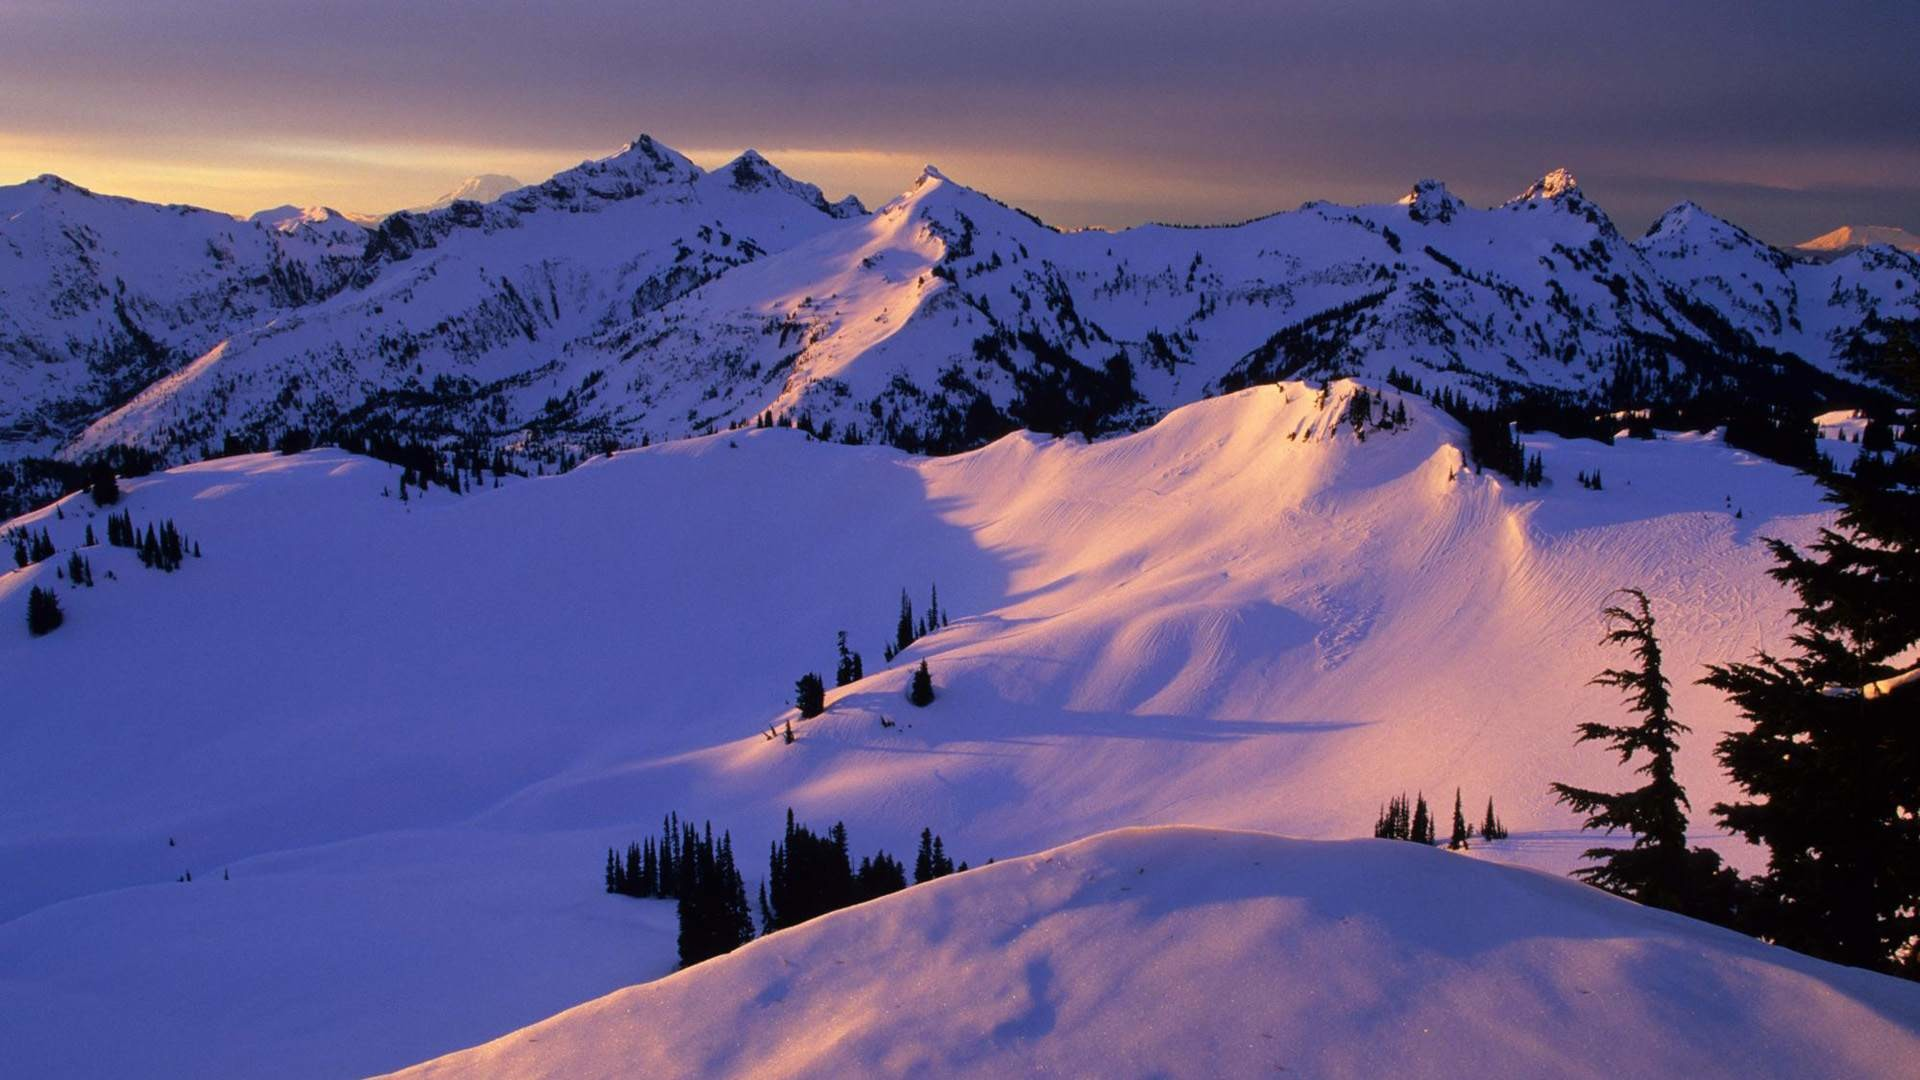 Snowy Background With Mountain: Snowy Mountains Wallpaper ·① WallpaperTag